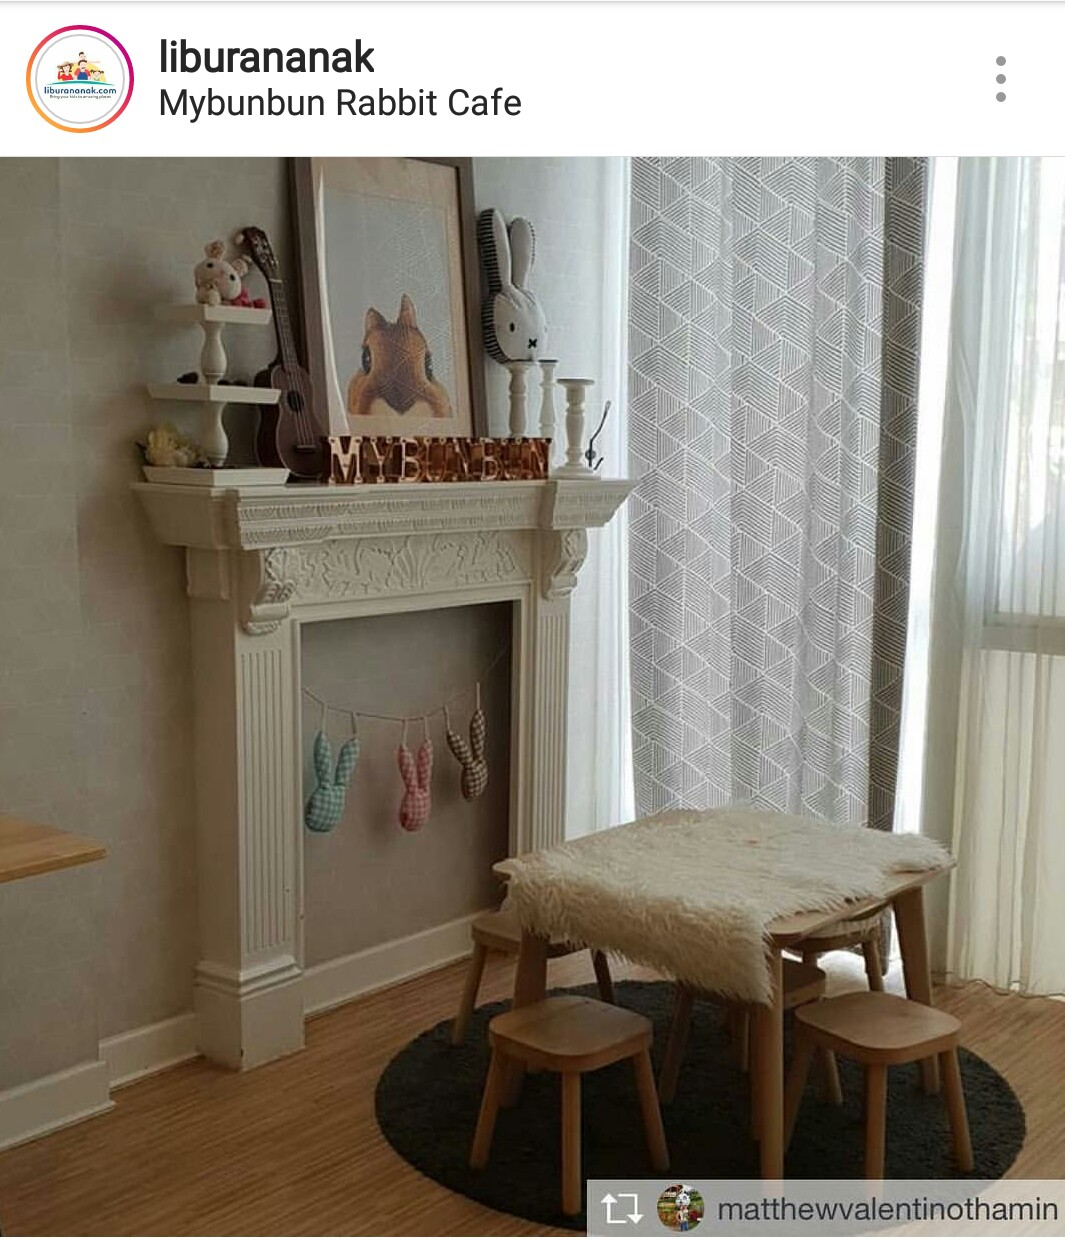 liburananak_my-bunbun-rabbit-cafe